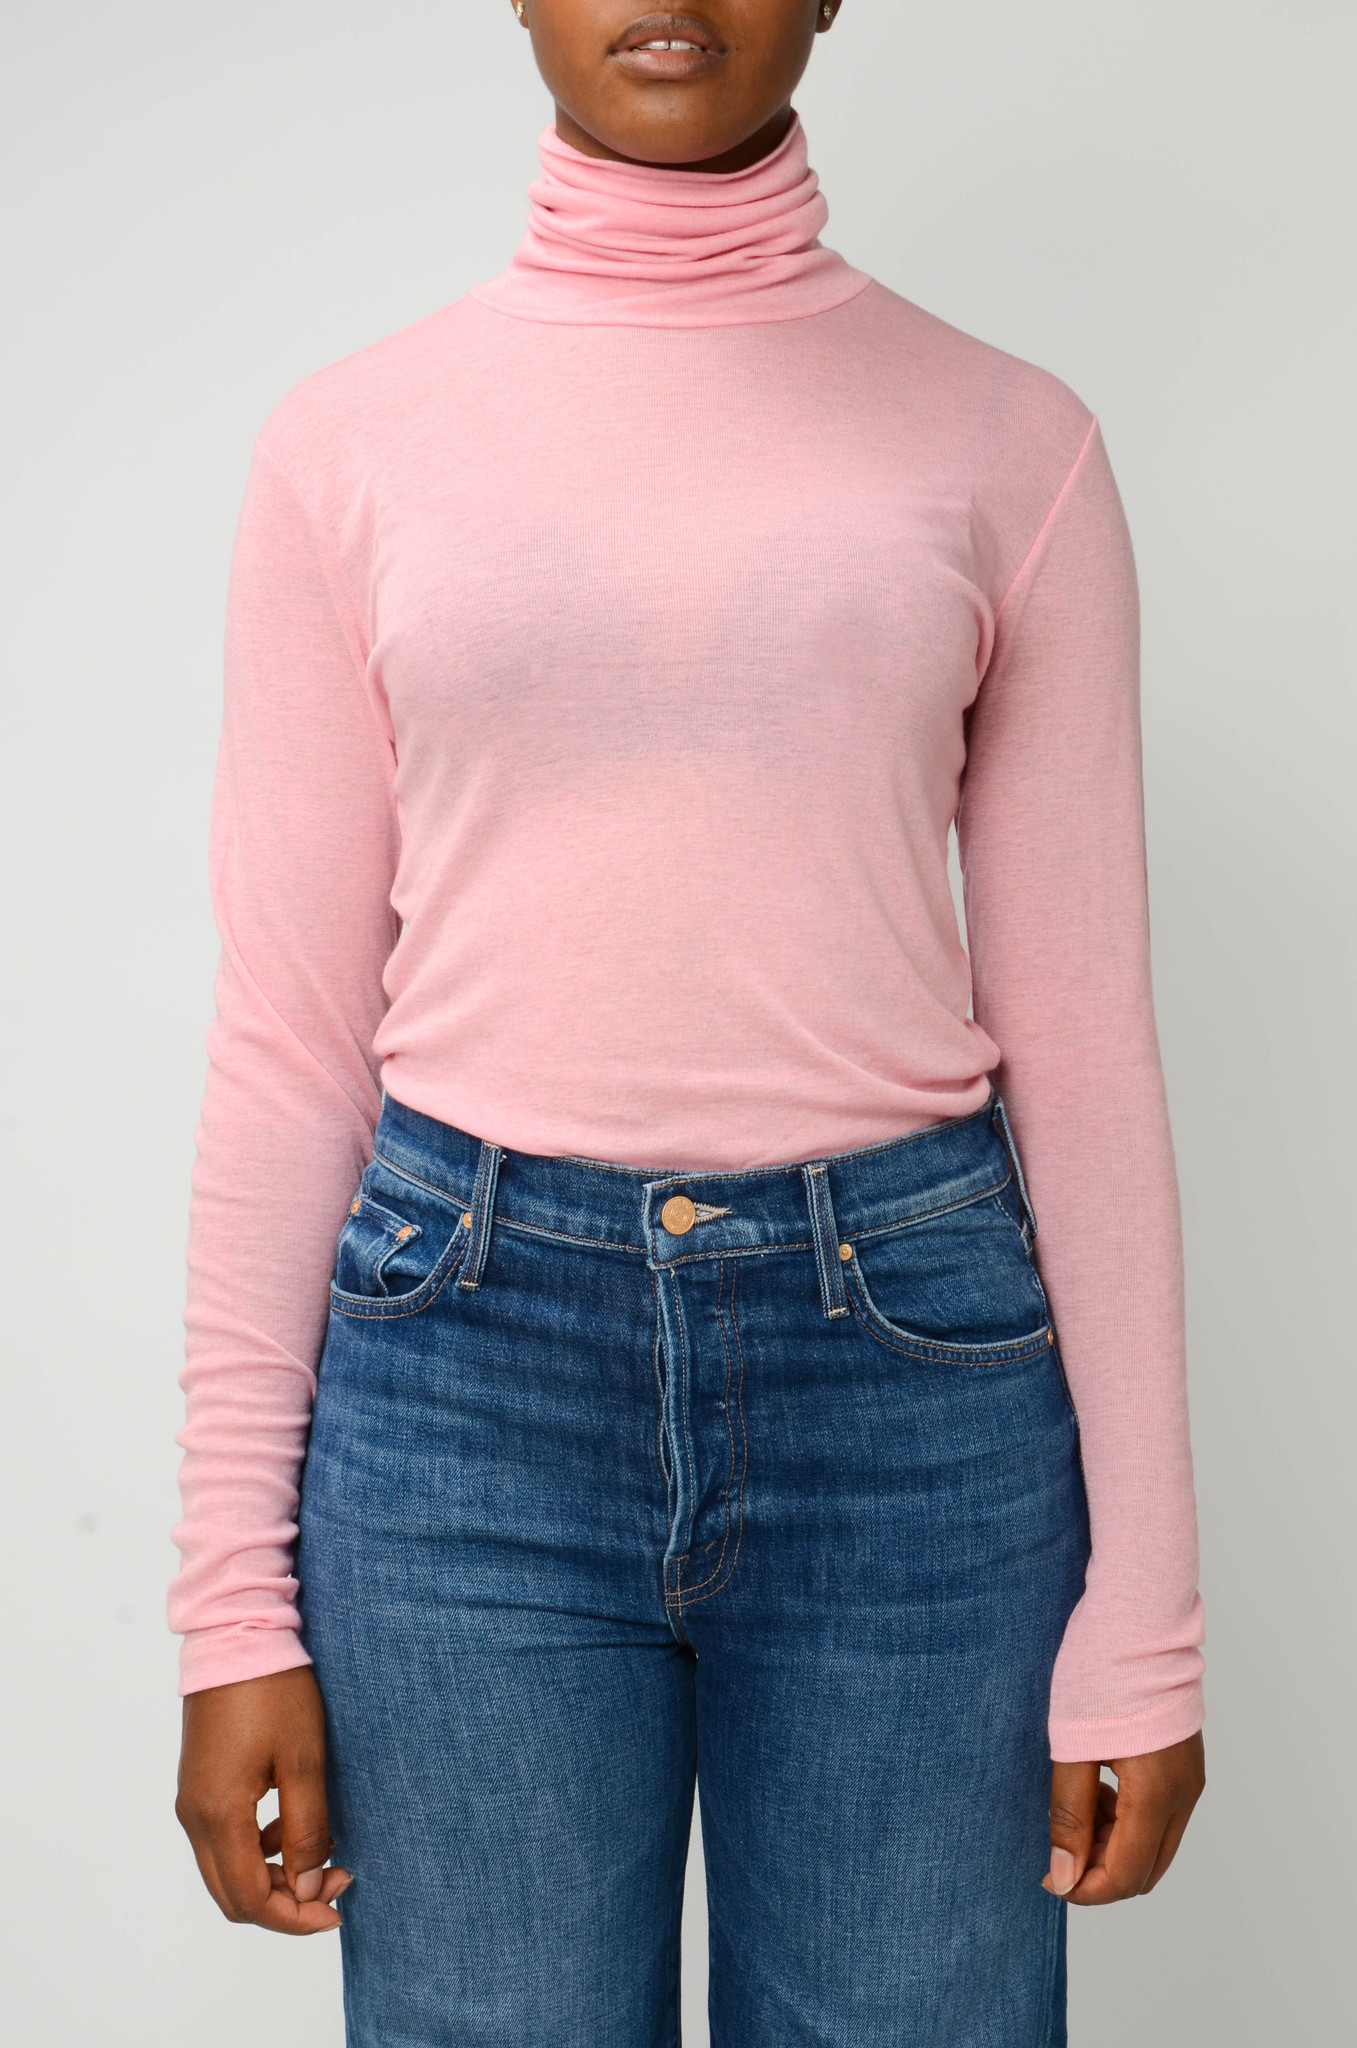 TURTLENECK IN CANDY PINK-1